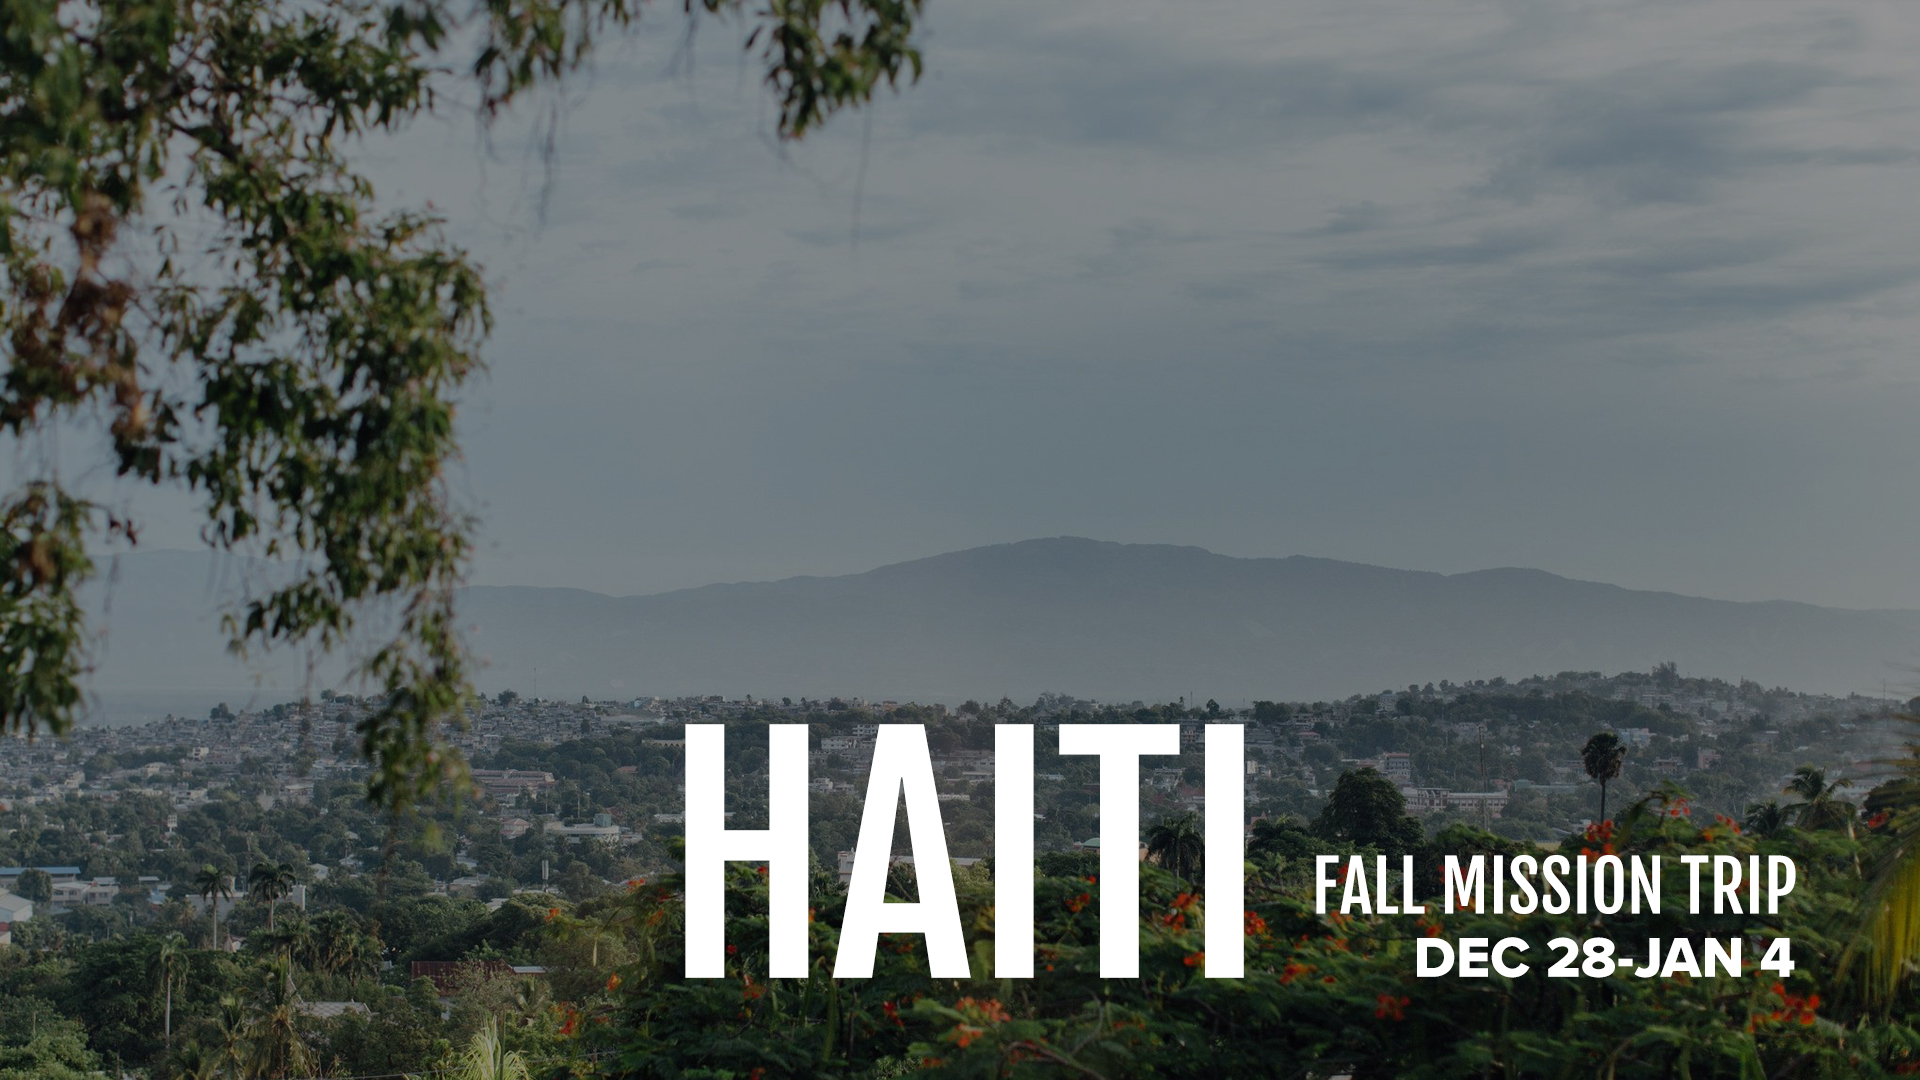 Haiti - Fall Mission Trip.jpg